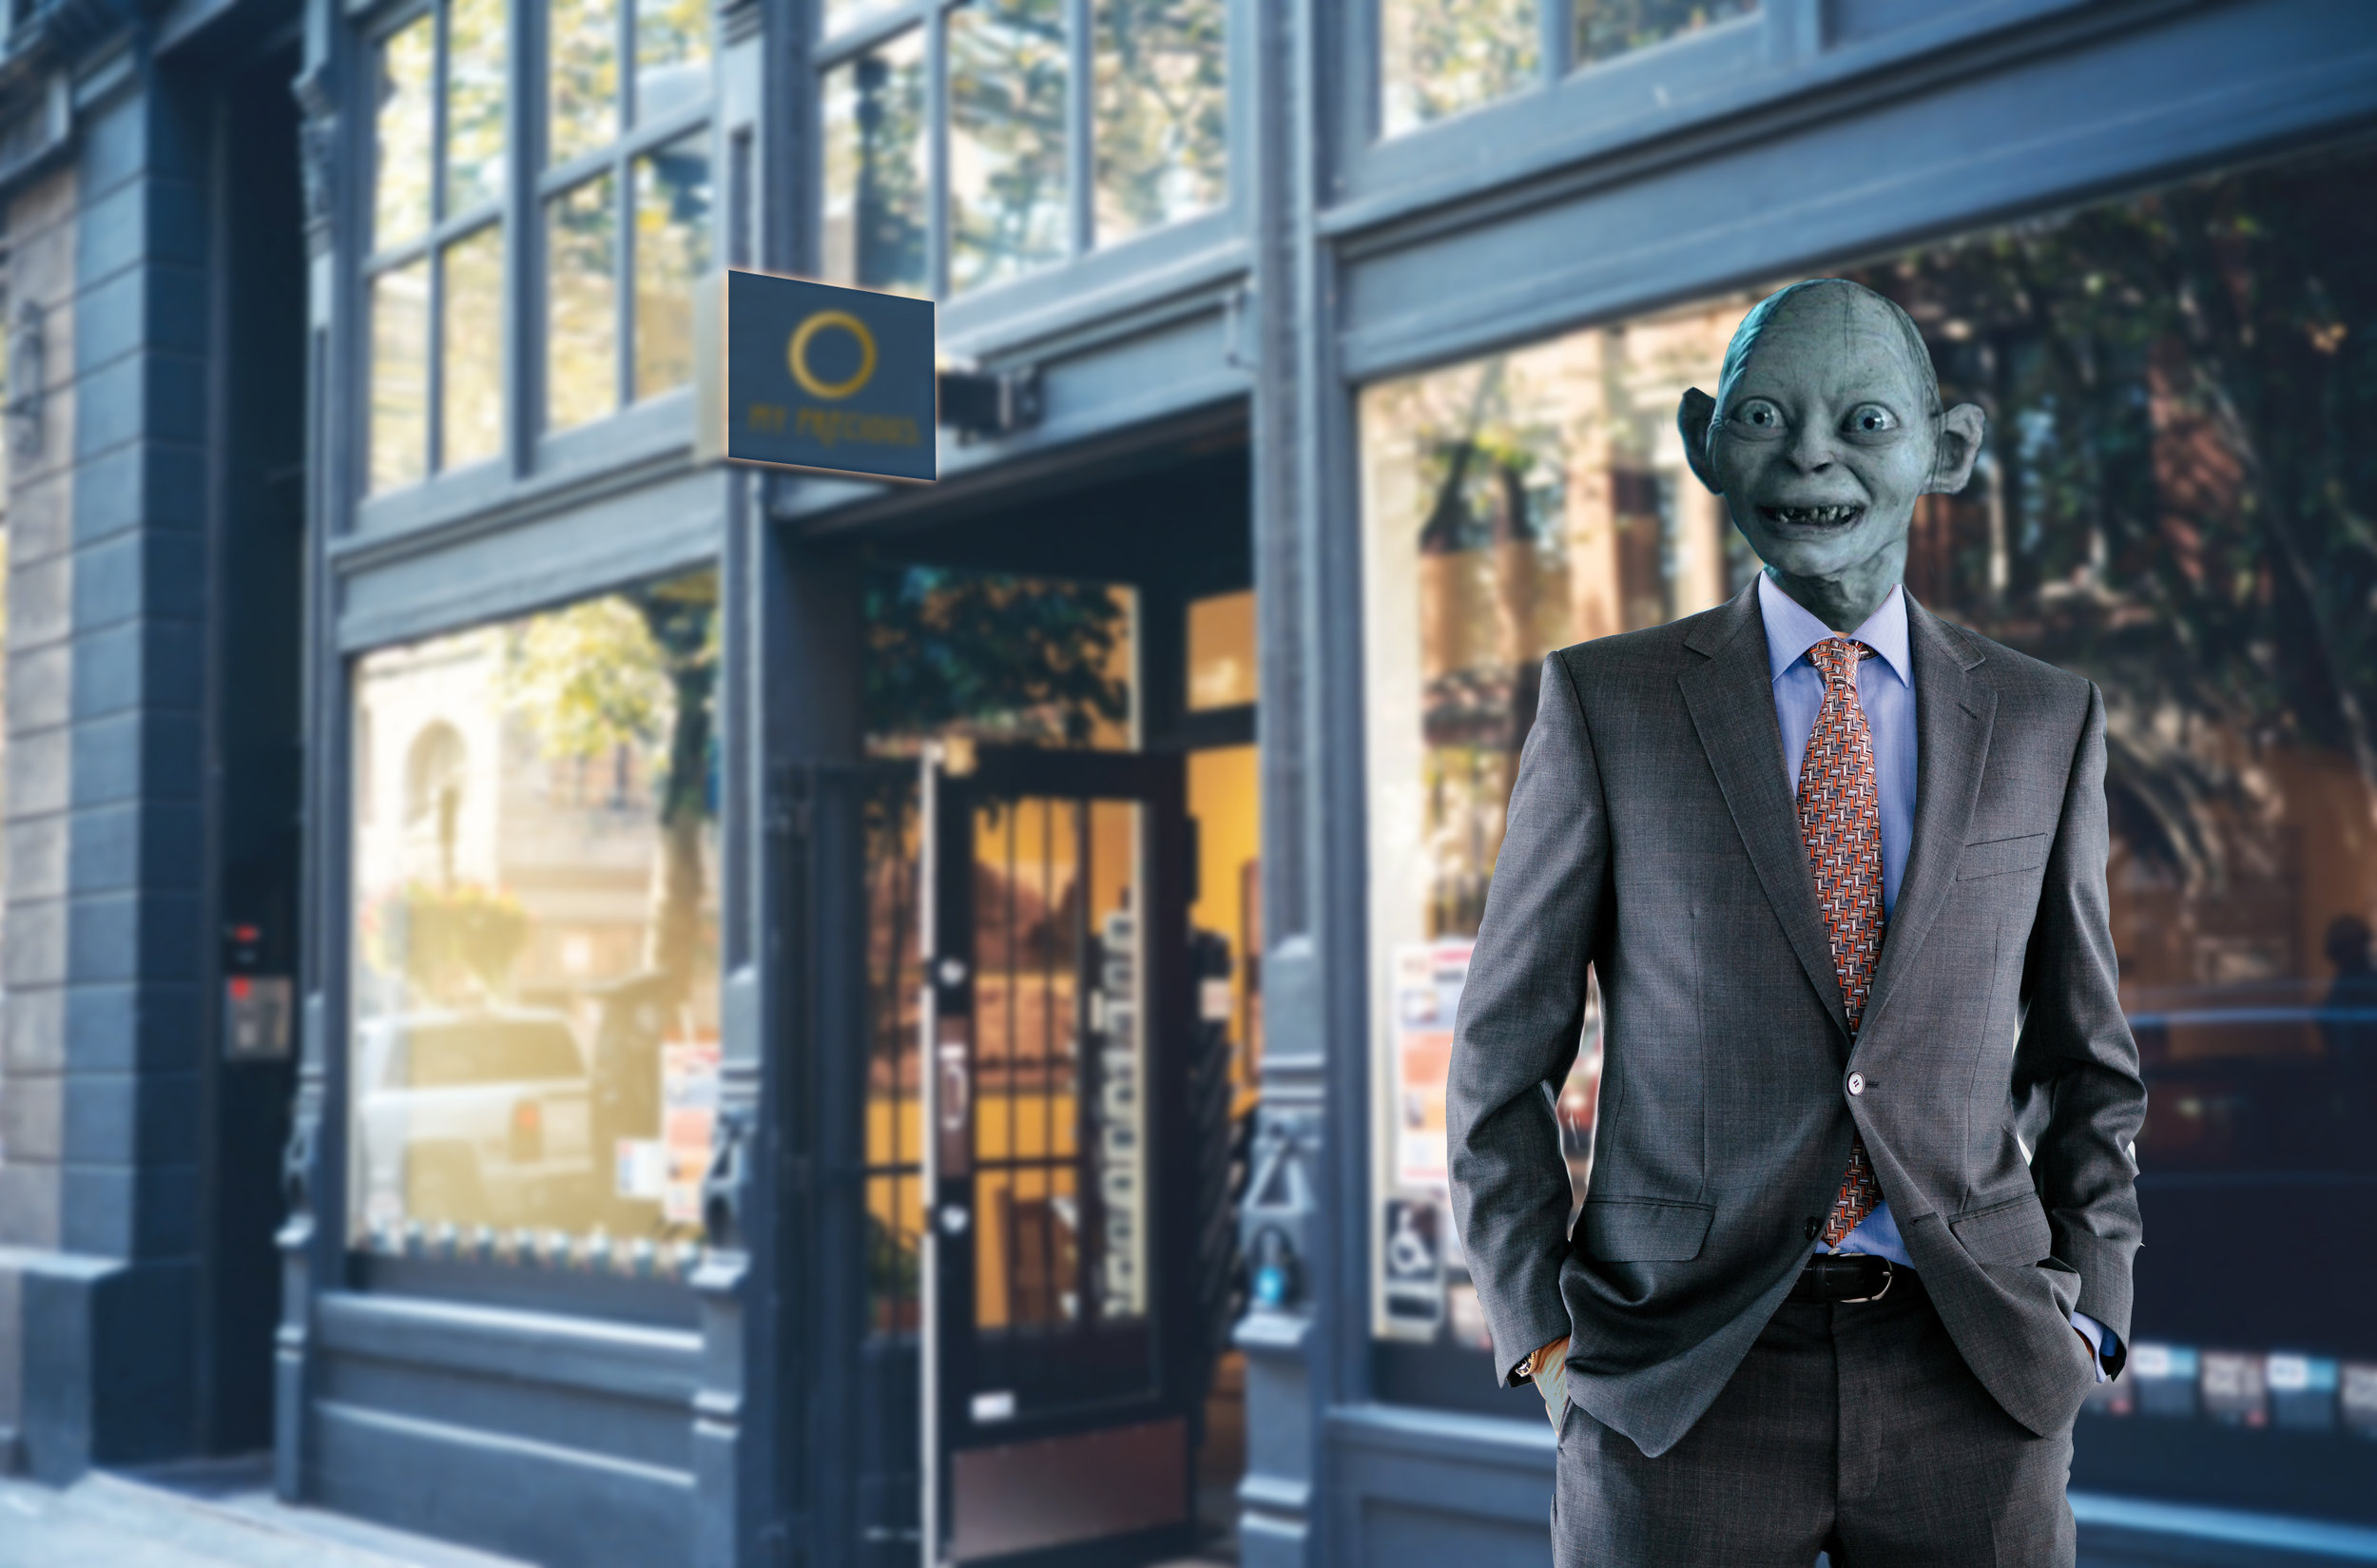 Gollum in front of his new ring shop.